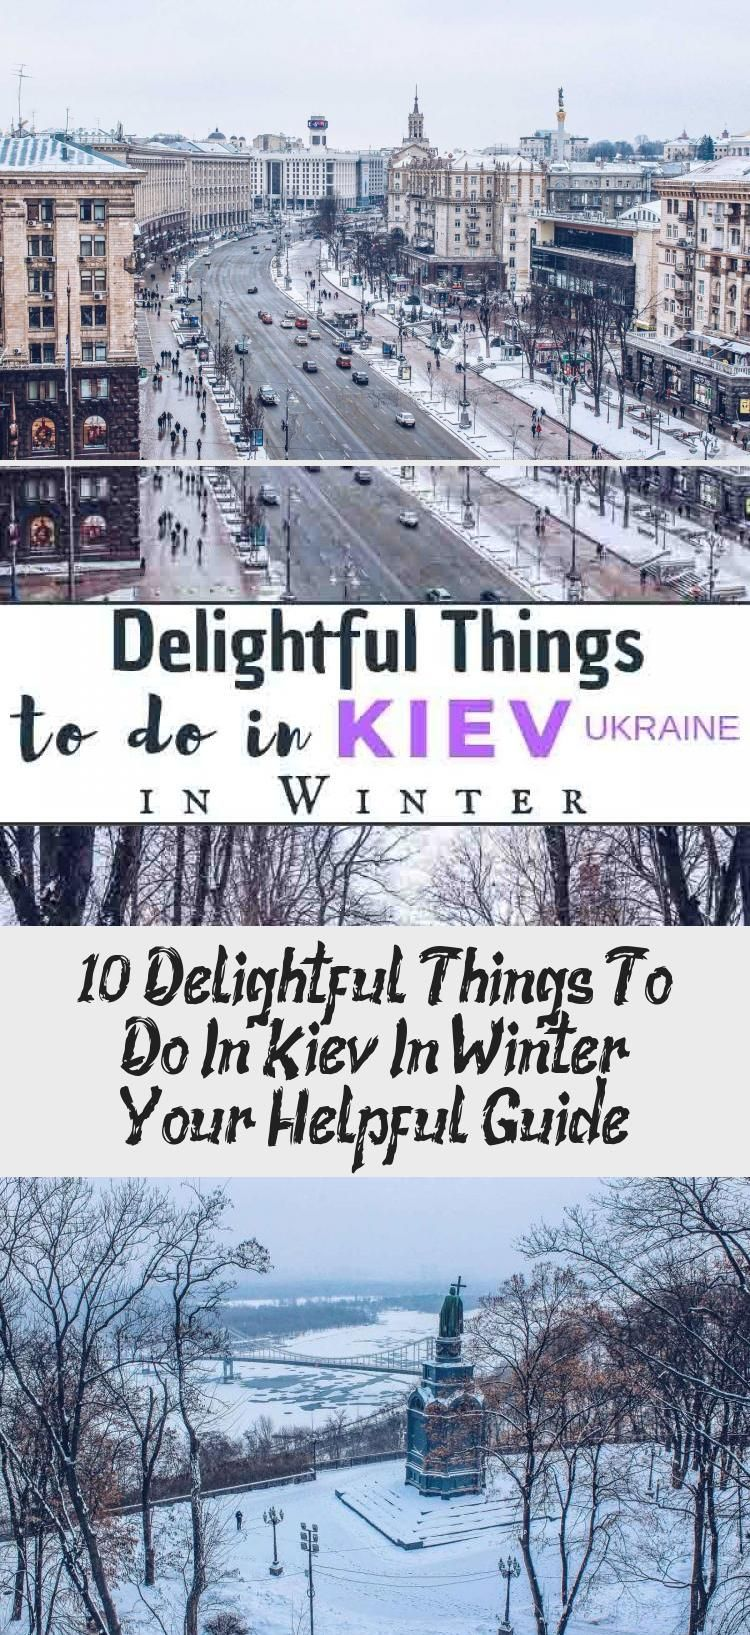 The list of delightful things to do in Kiev in winter. They are all interesting and unique. Check these super cool winter Kiev tips for your trip to Ukraine. #EuropeTravel #Kiev #Ukraine #WinterTravel #EasternEurope #travelingwinterSnow #travelingwinterFashion #travelingwinterAdventure #travelingwinterOutfit #travelingwinterCouple